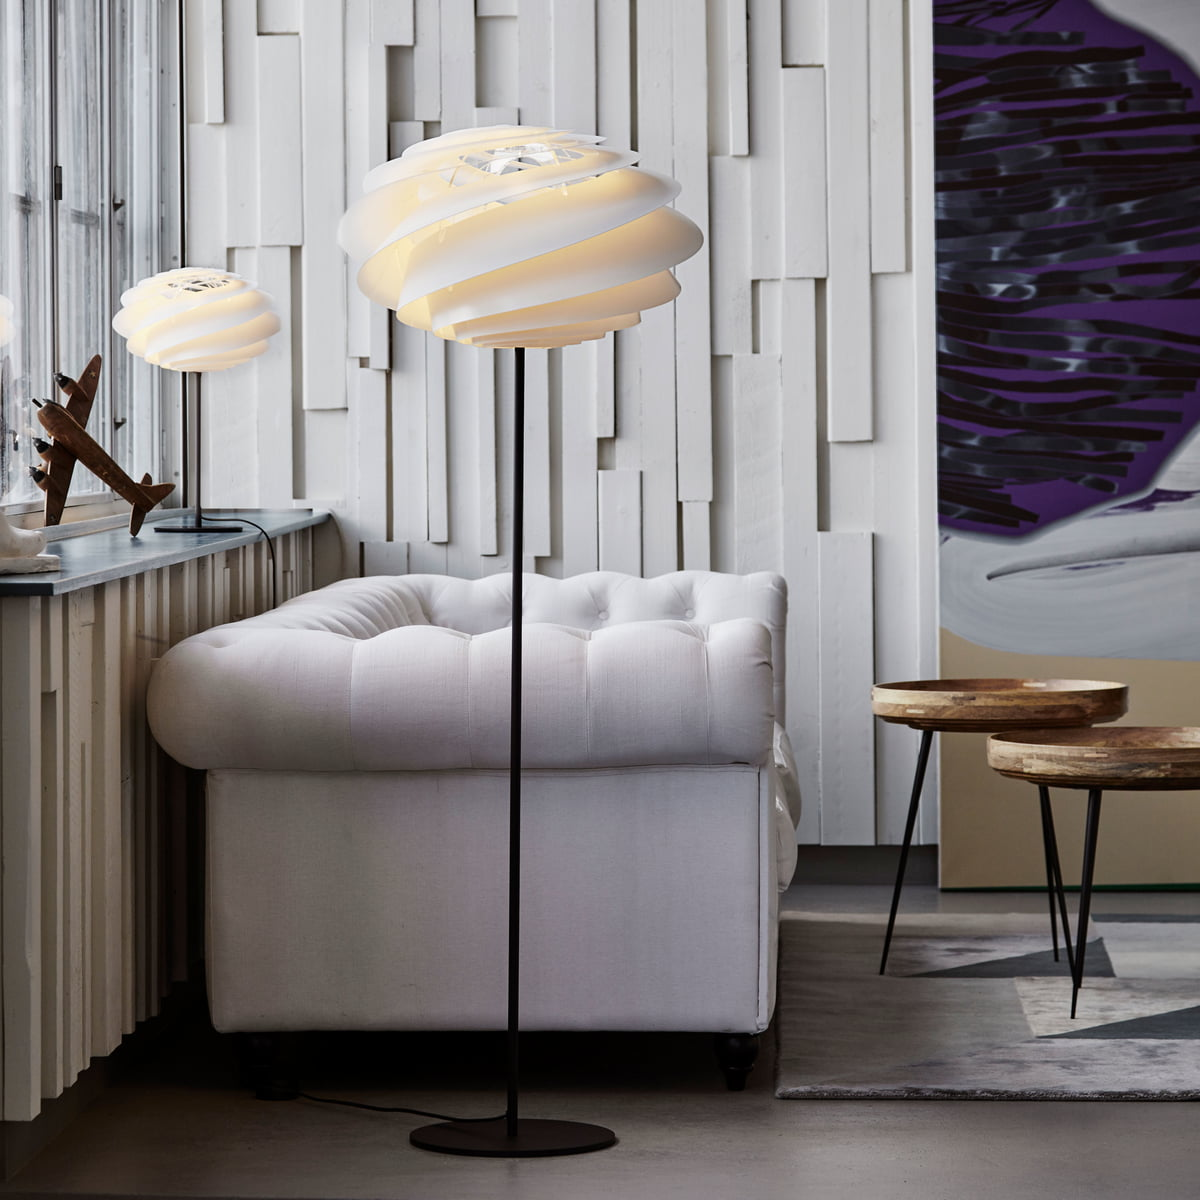 Swirl Floor Lamp by Le Klint Connox